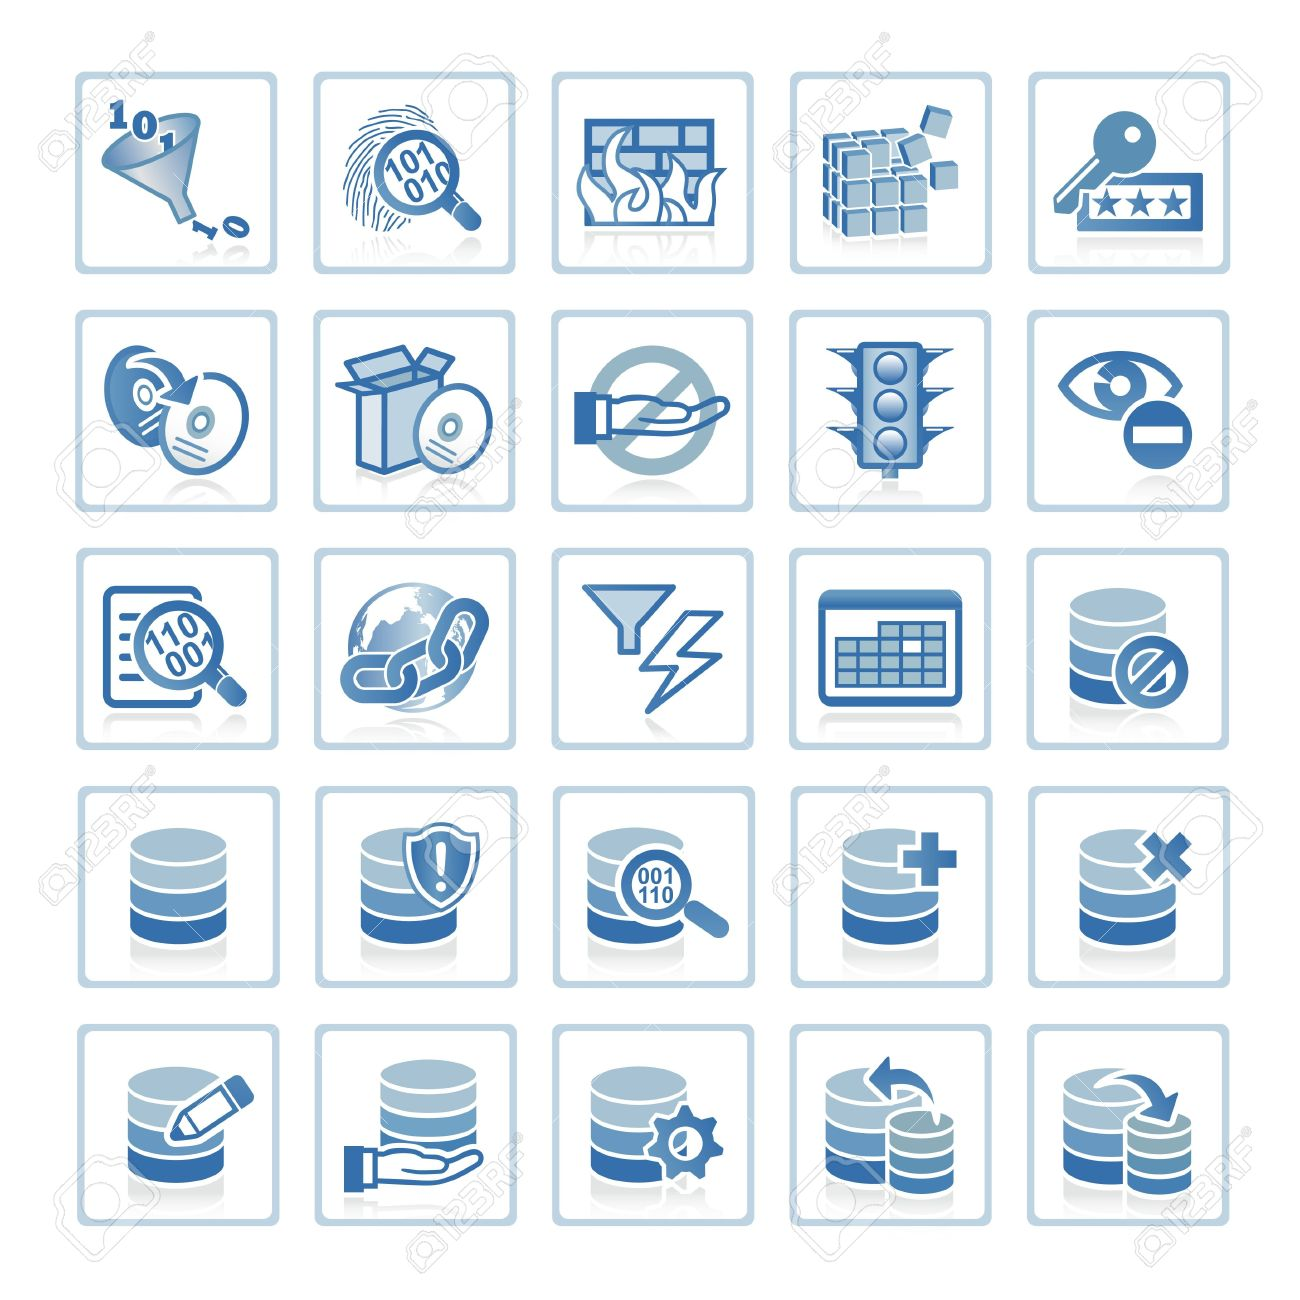 Web icons : Internet Security and Database Management Stock Photo - 6399098